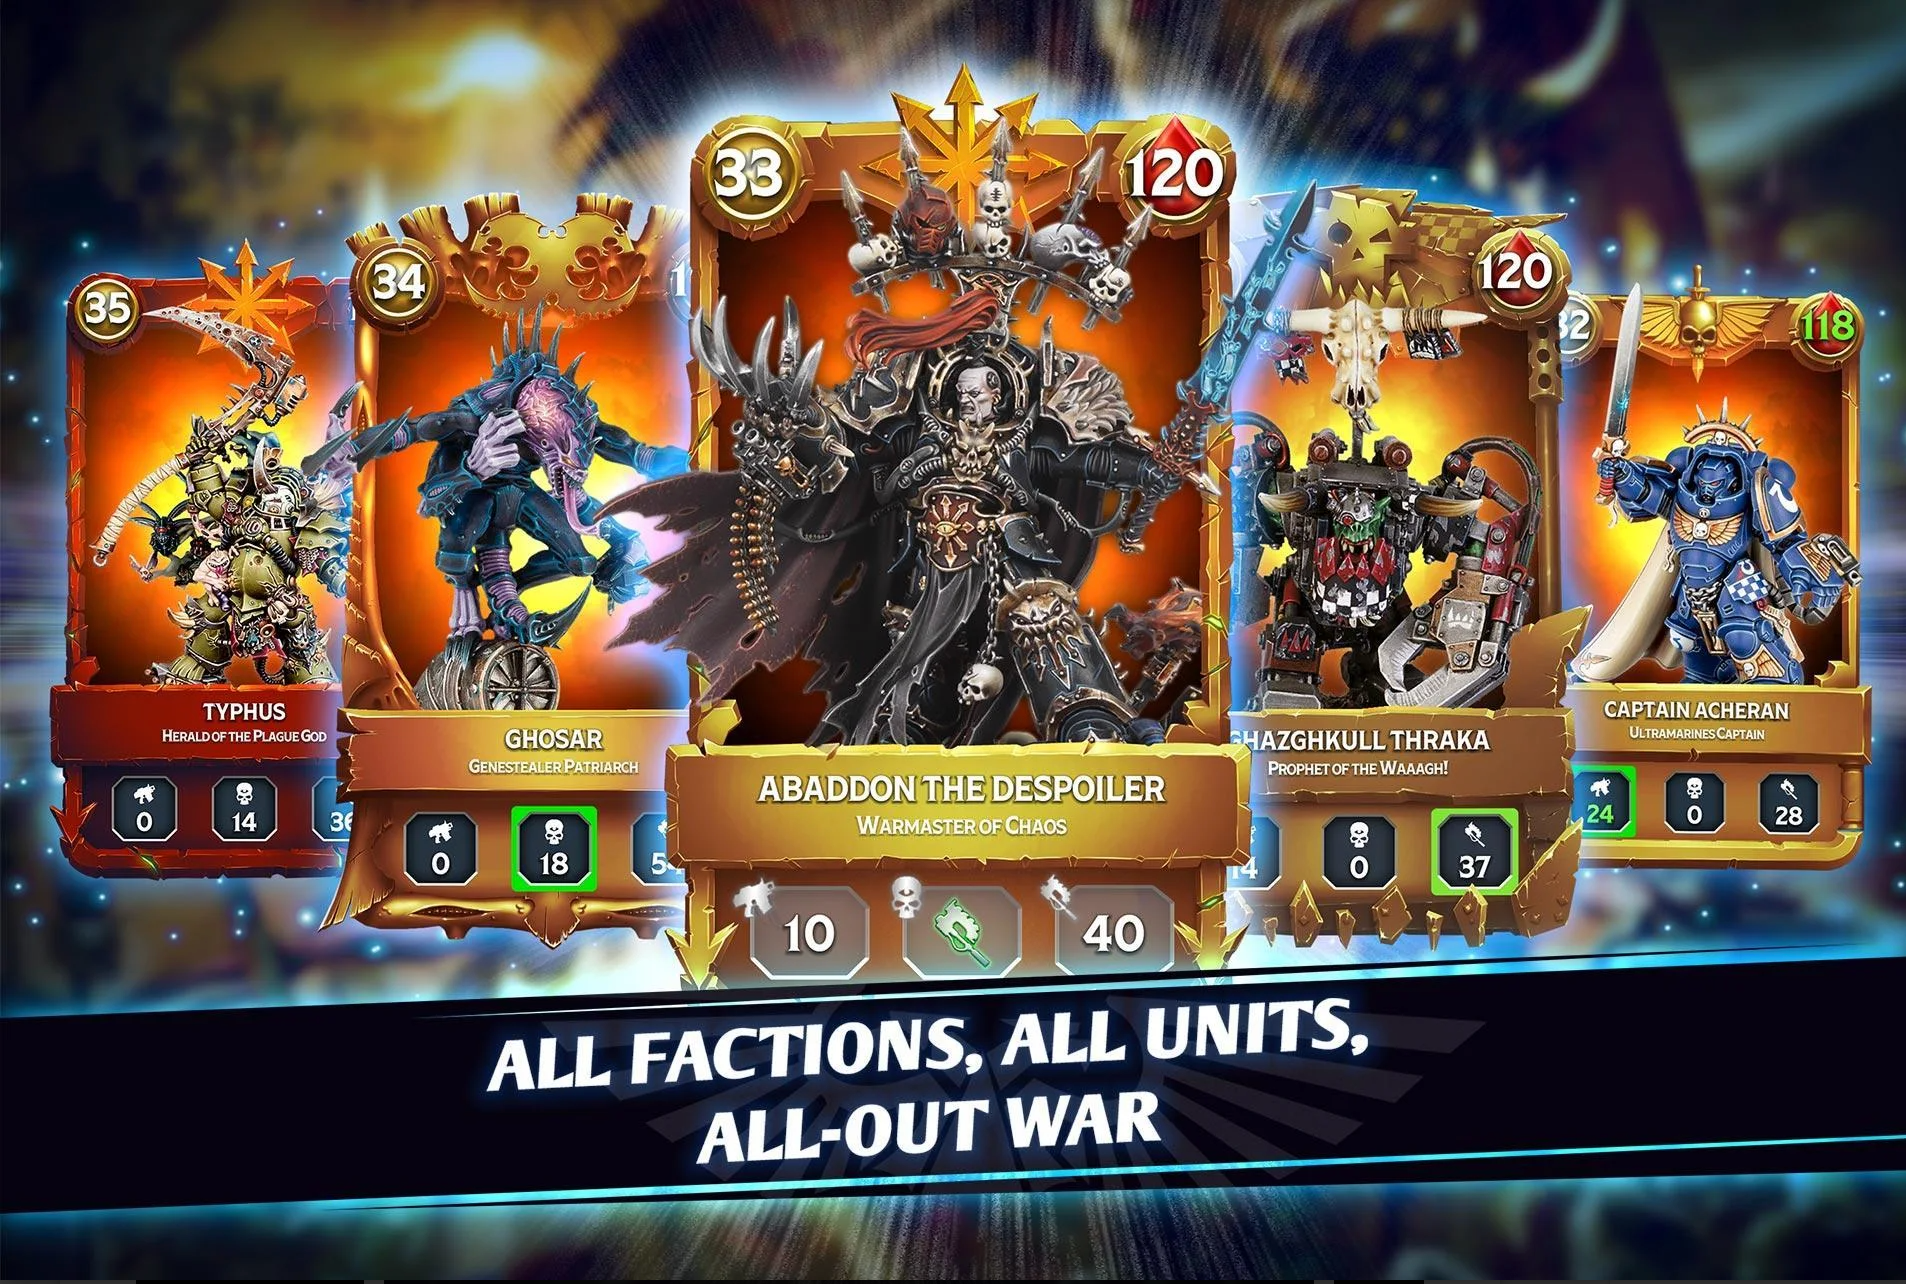 Warhammer Combat Cards feature